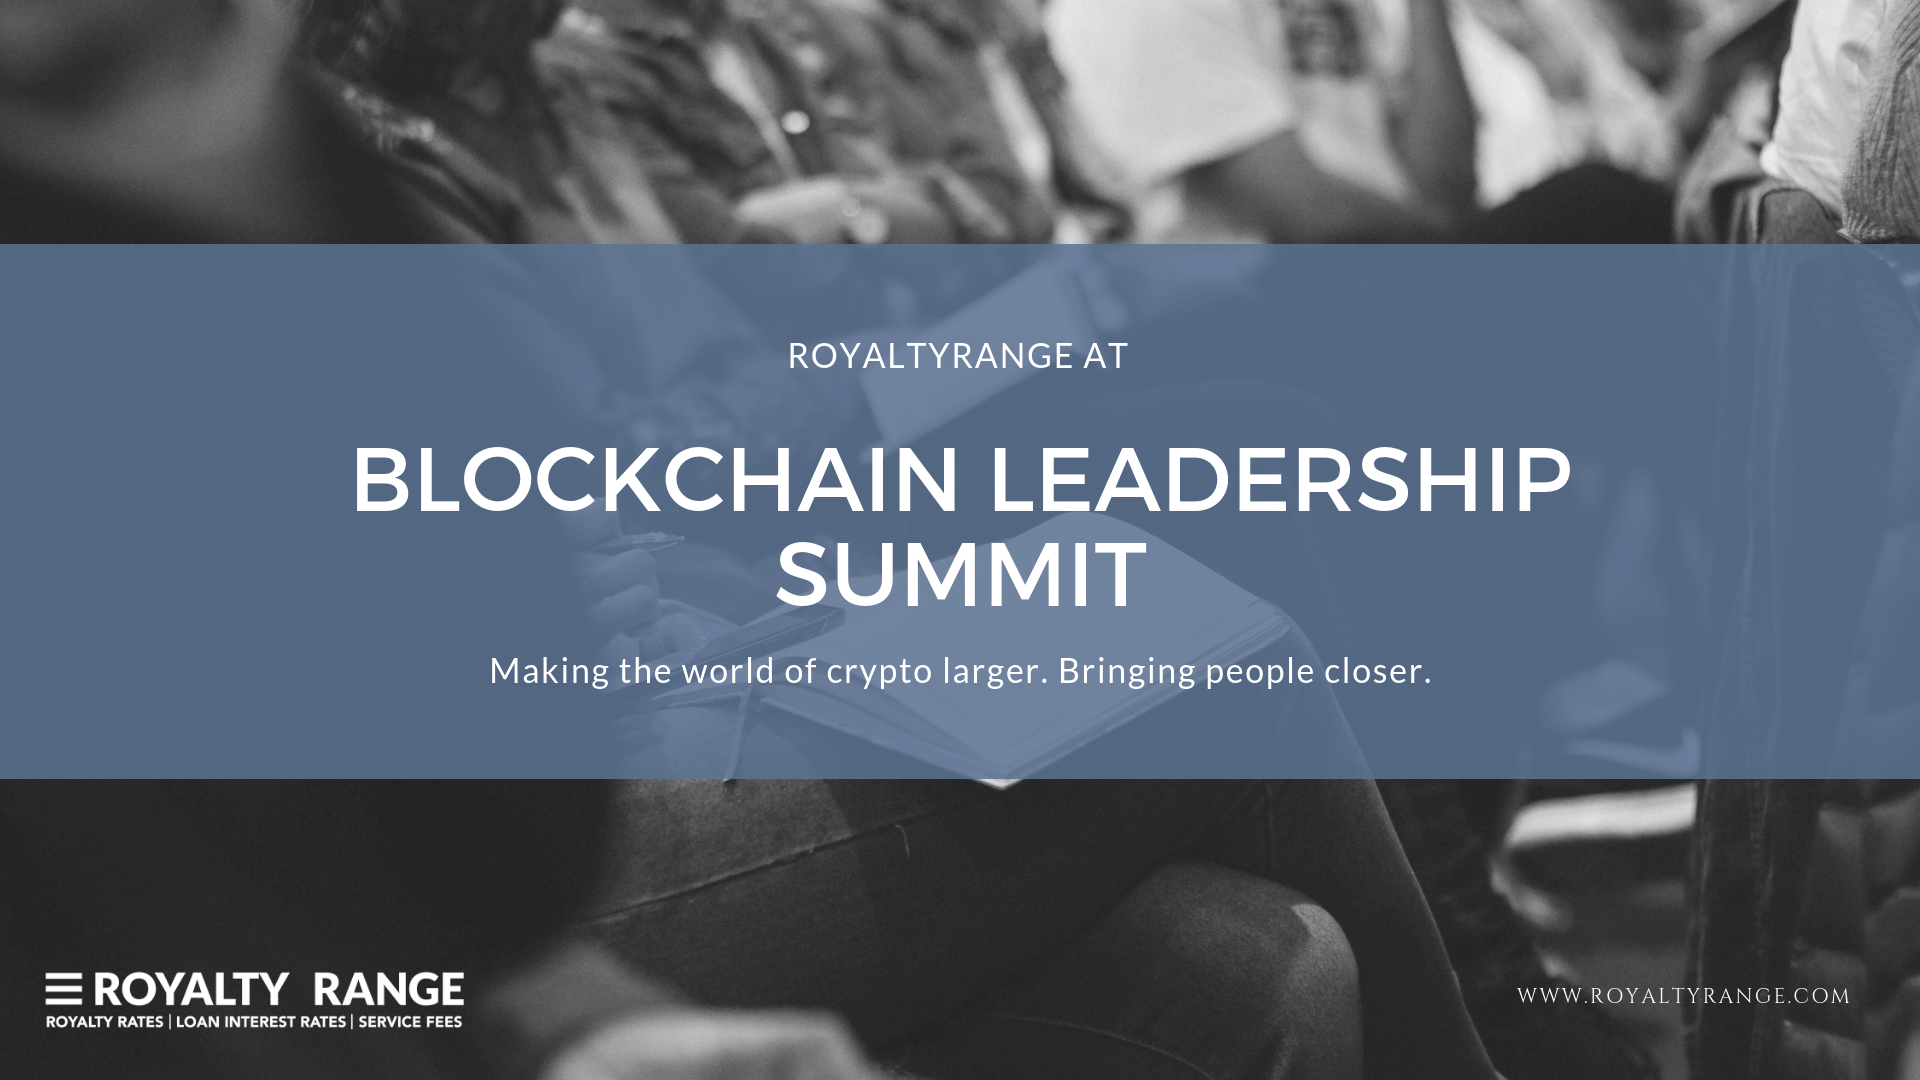 BLOCKCHAIN LEADERSHIP SUMMIT